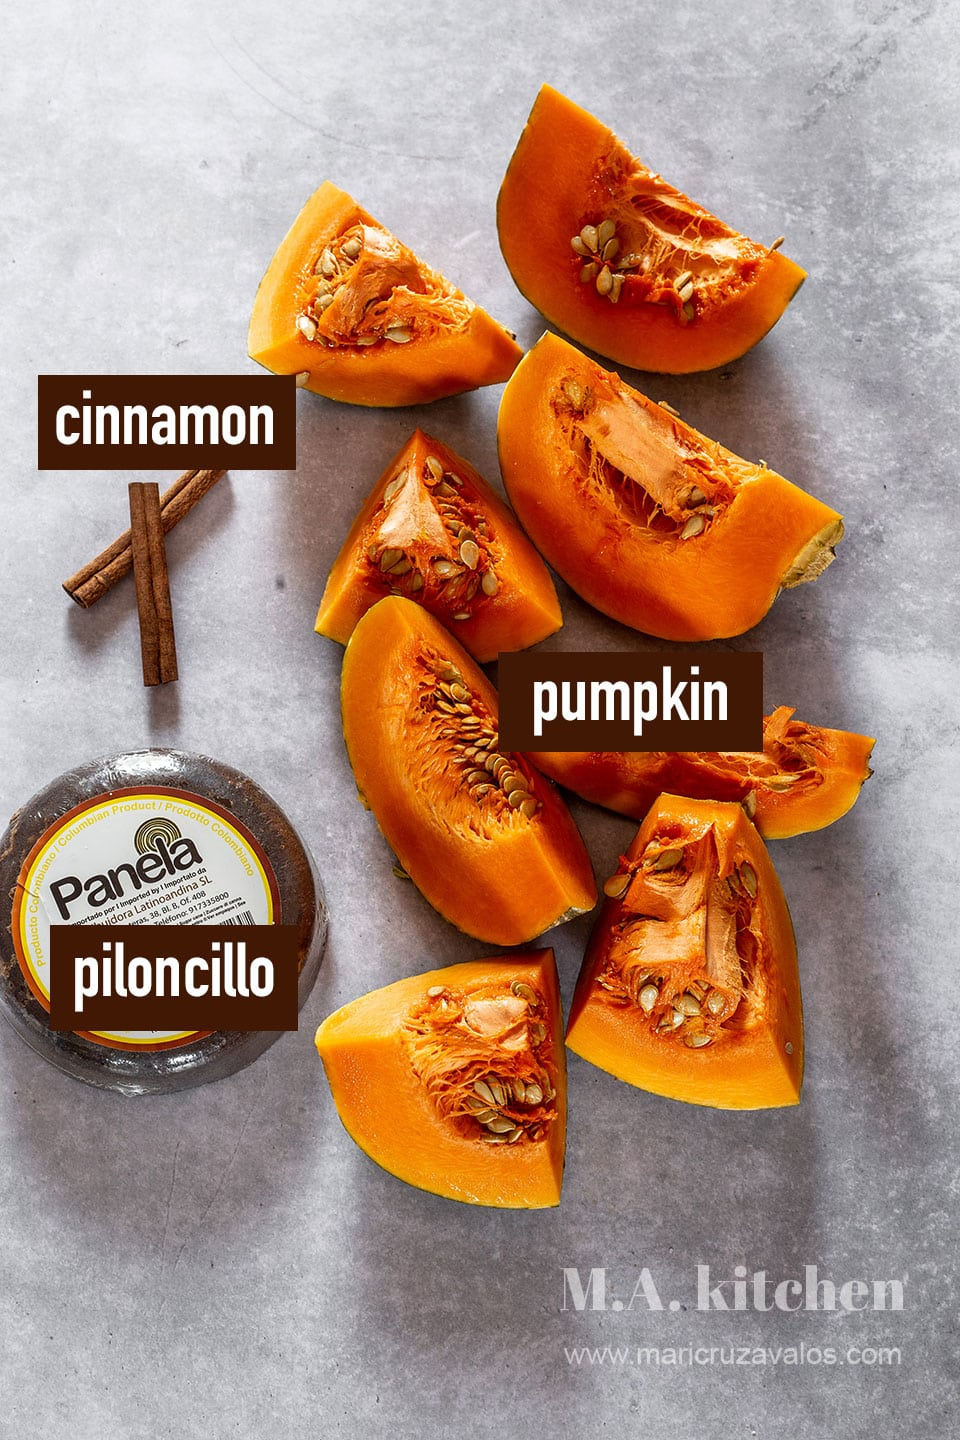 Mexican candied pumpkin ingredients labeled and displayed on a concrete surface.